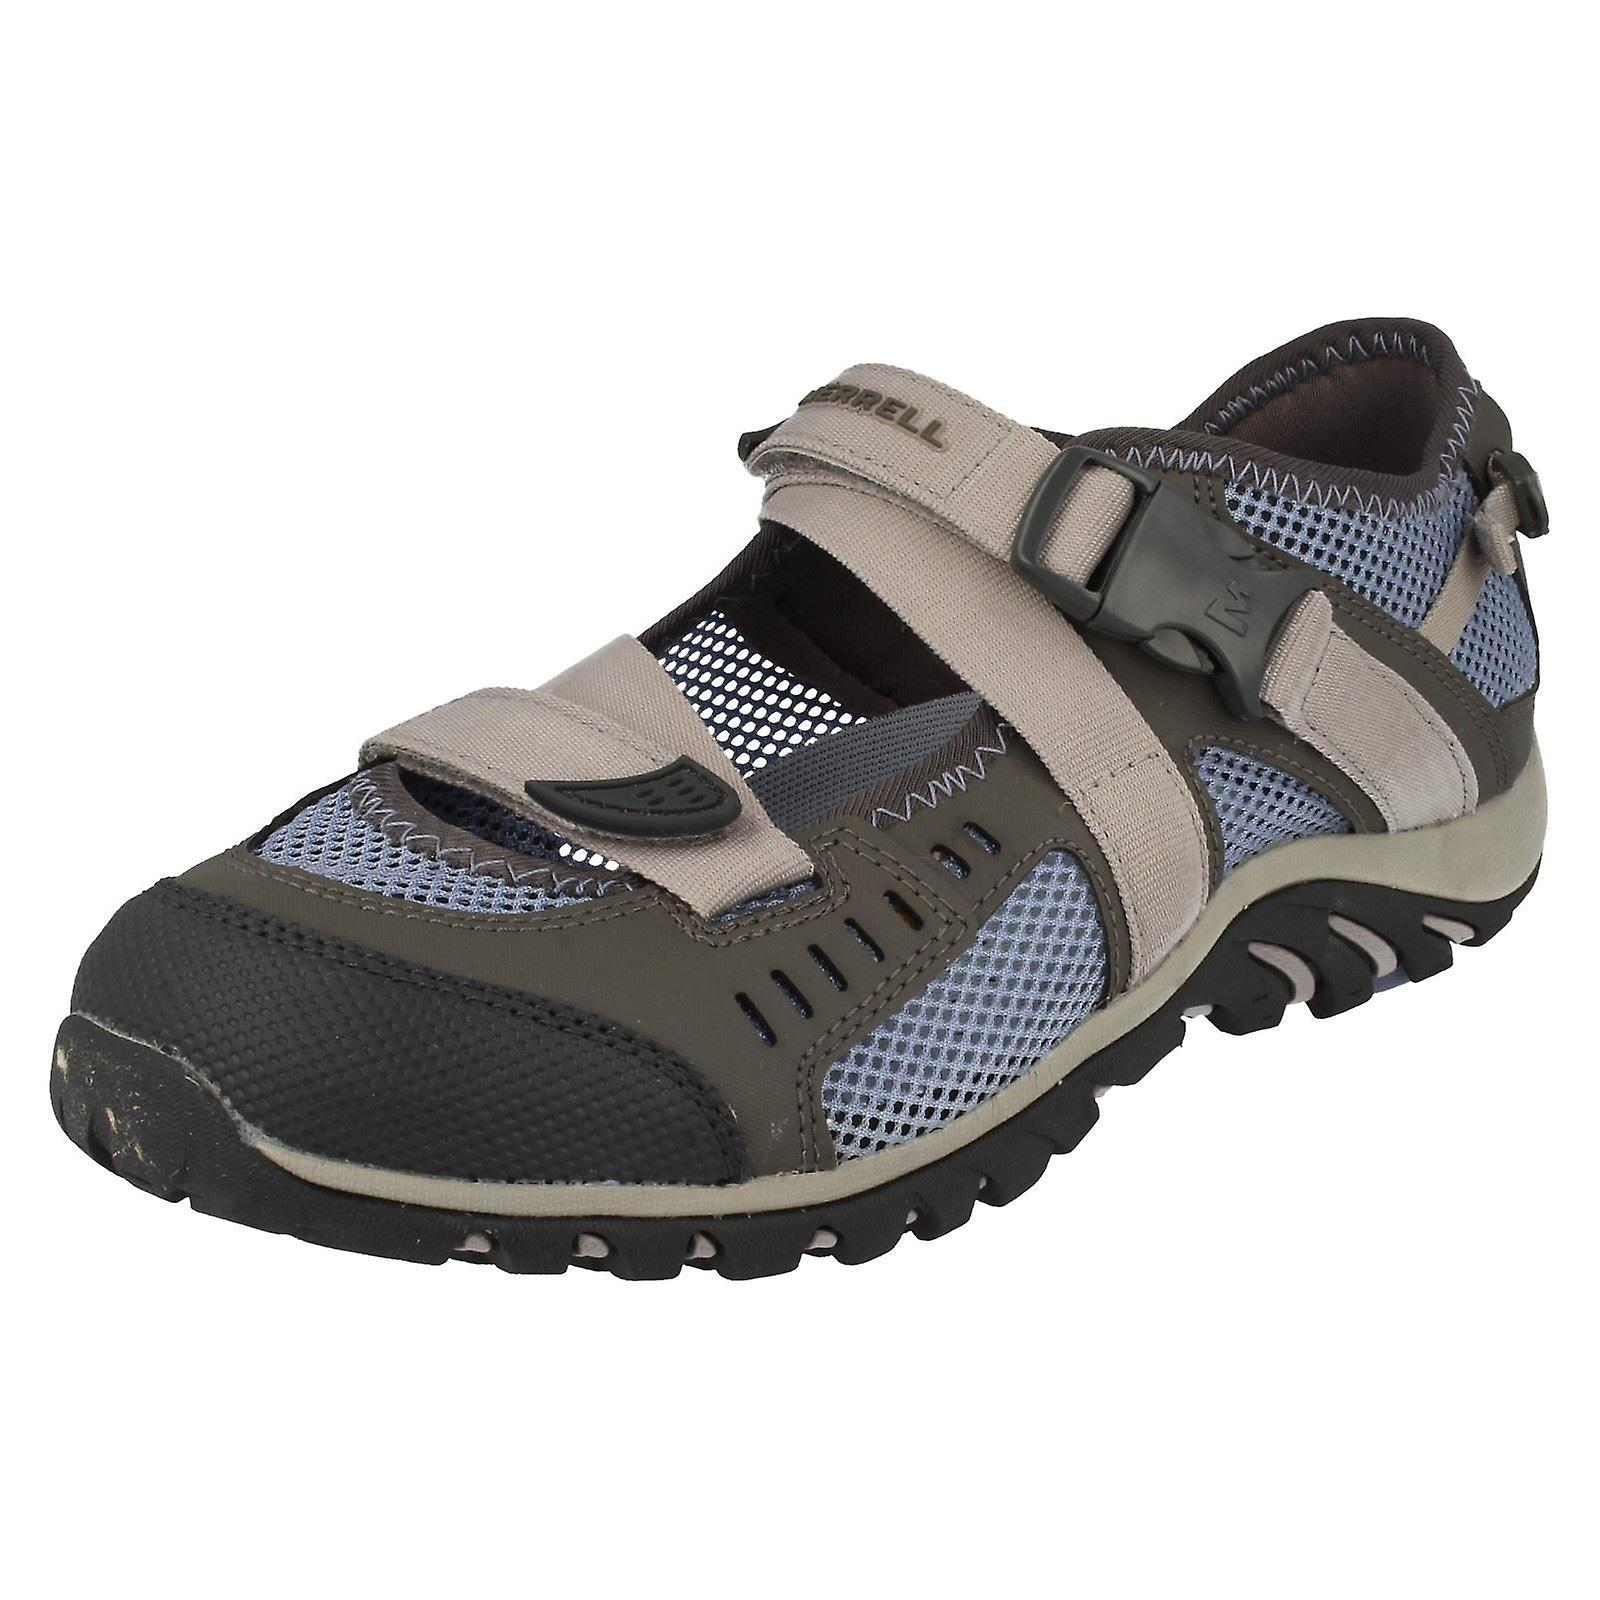 Merrell Ladies Water Shoes